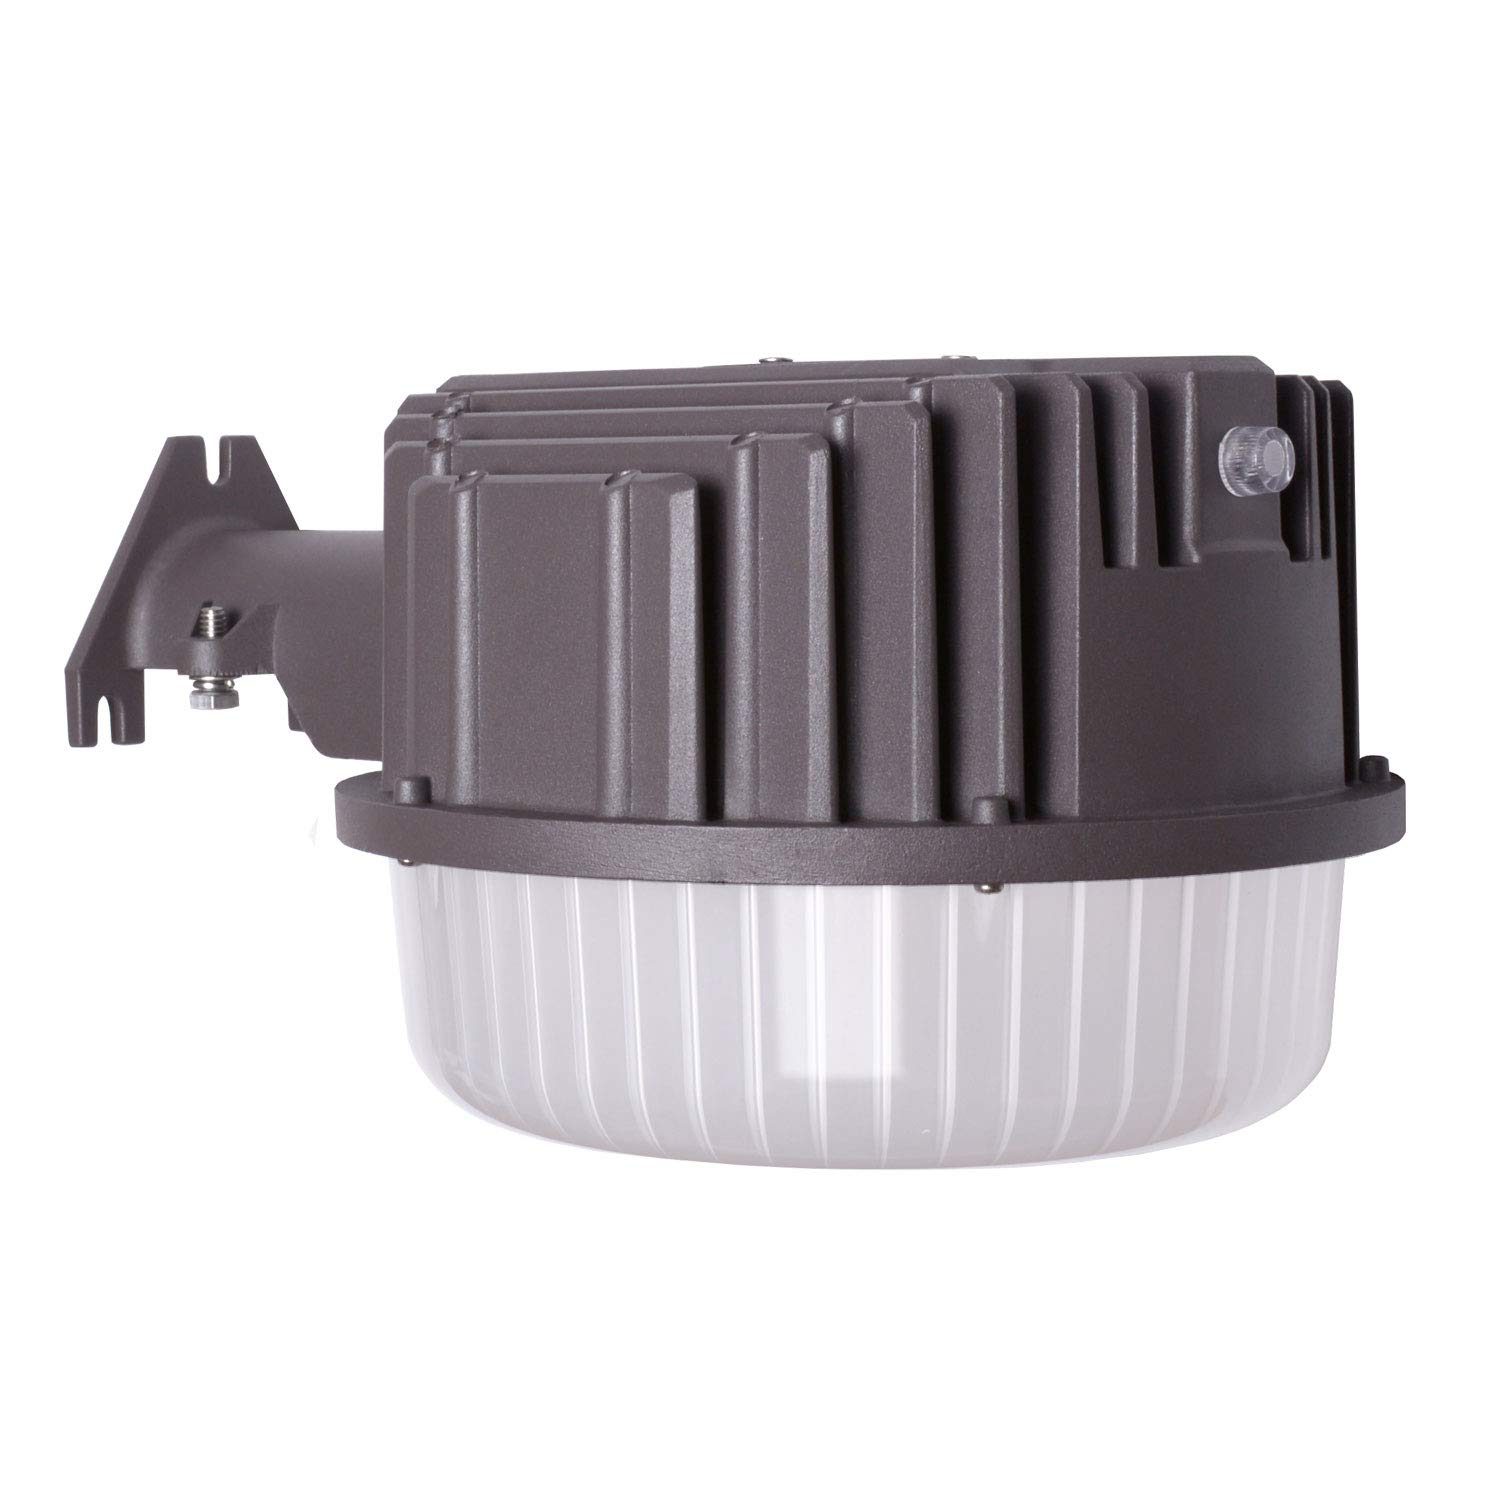 AntLux 80W LED Dusk to Dawn Light Outdoor Barn Lights, 8600lm, 5000K Daylight, Photocell Included, Perfect Security Area Street Yard Light, 700W Incandescent or 200W MH/HID Equivalent, Bronze Finish